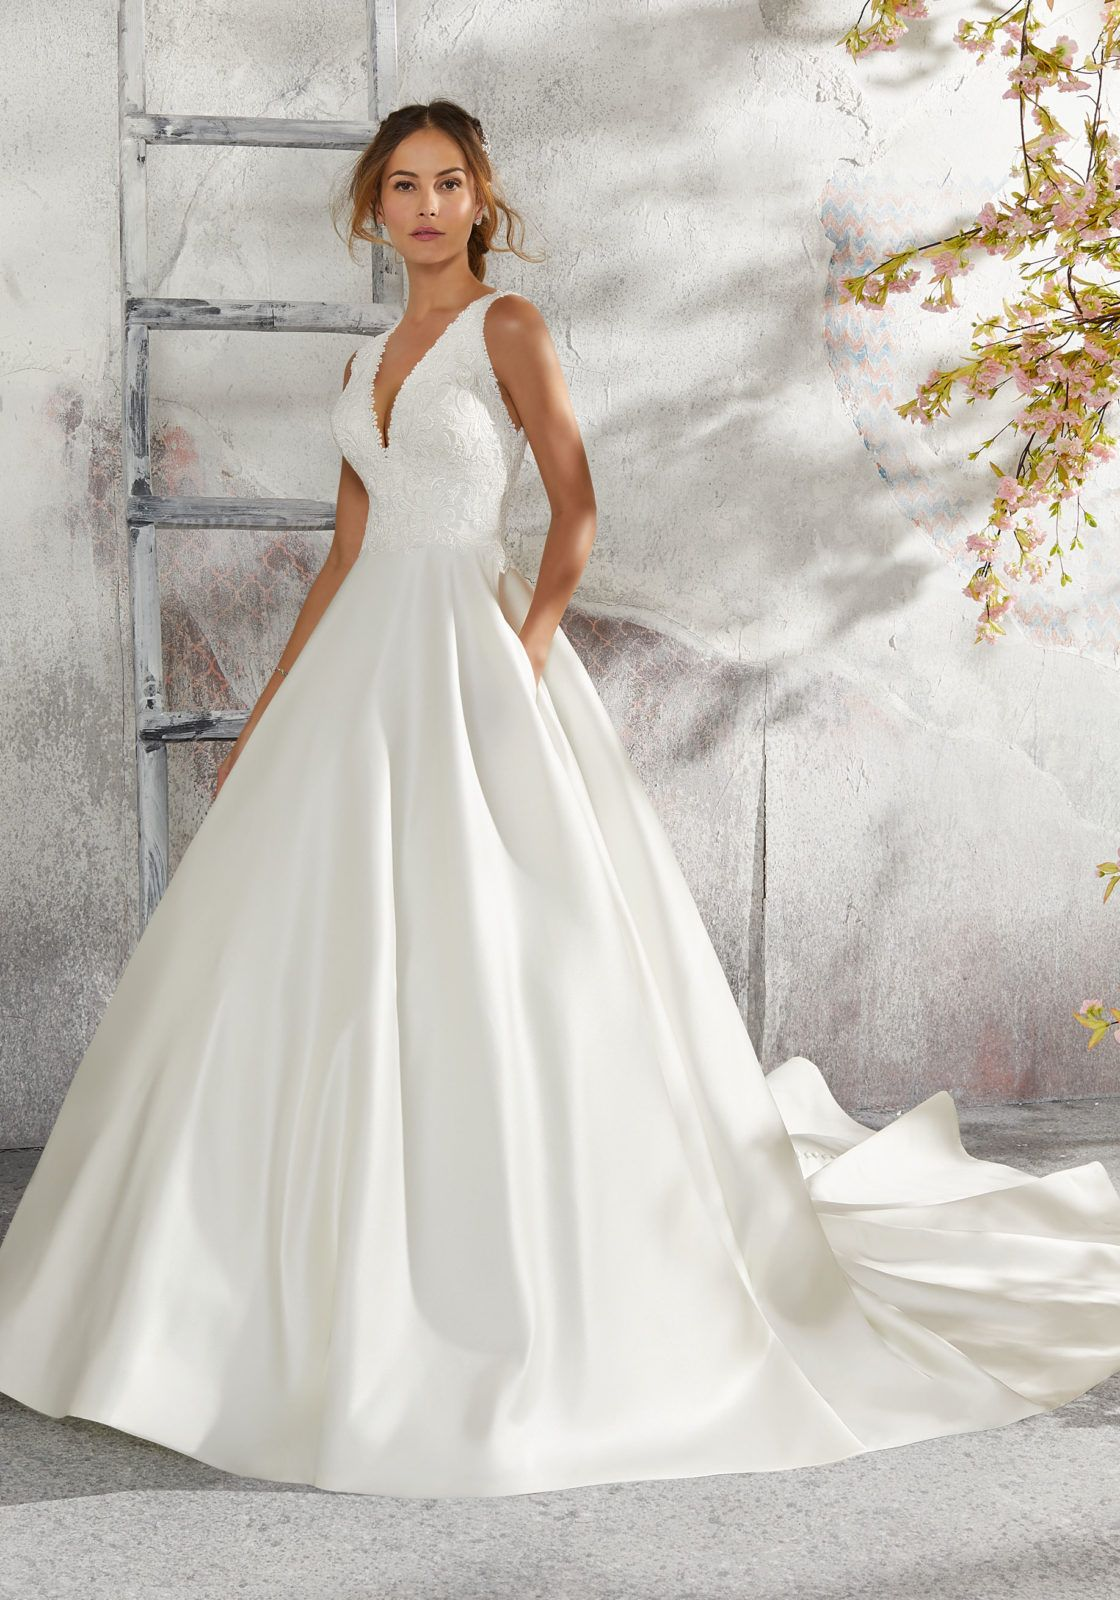 3bc82b64256f Style Number: 5684 Laurie Wedding Dress Classic and Timeless, the Full Satin  Ballgown Wedding Dress Features a Deep V-Neckline Bodice Accented in  Frosted ...